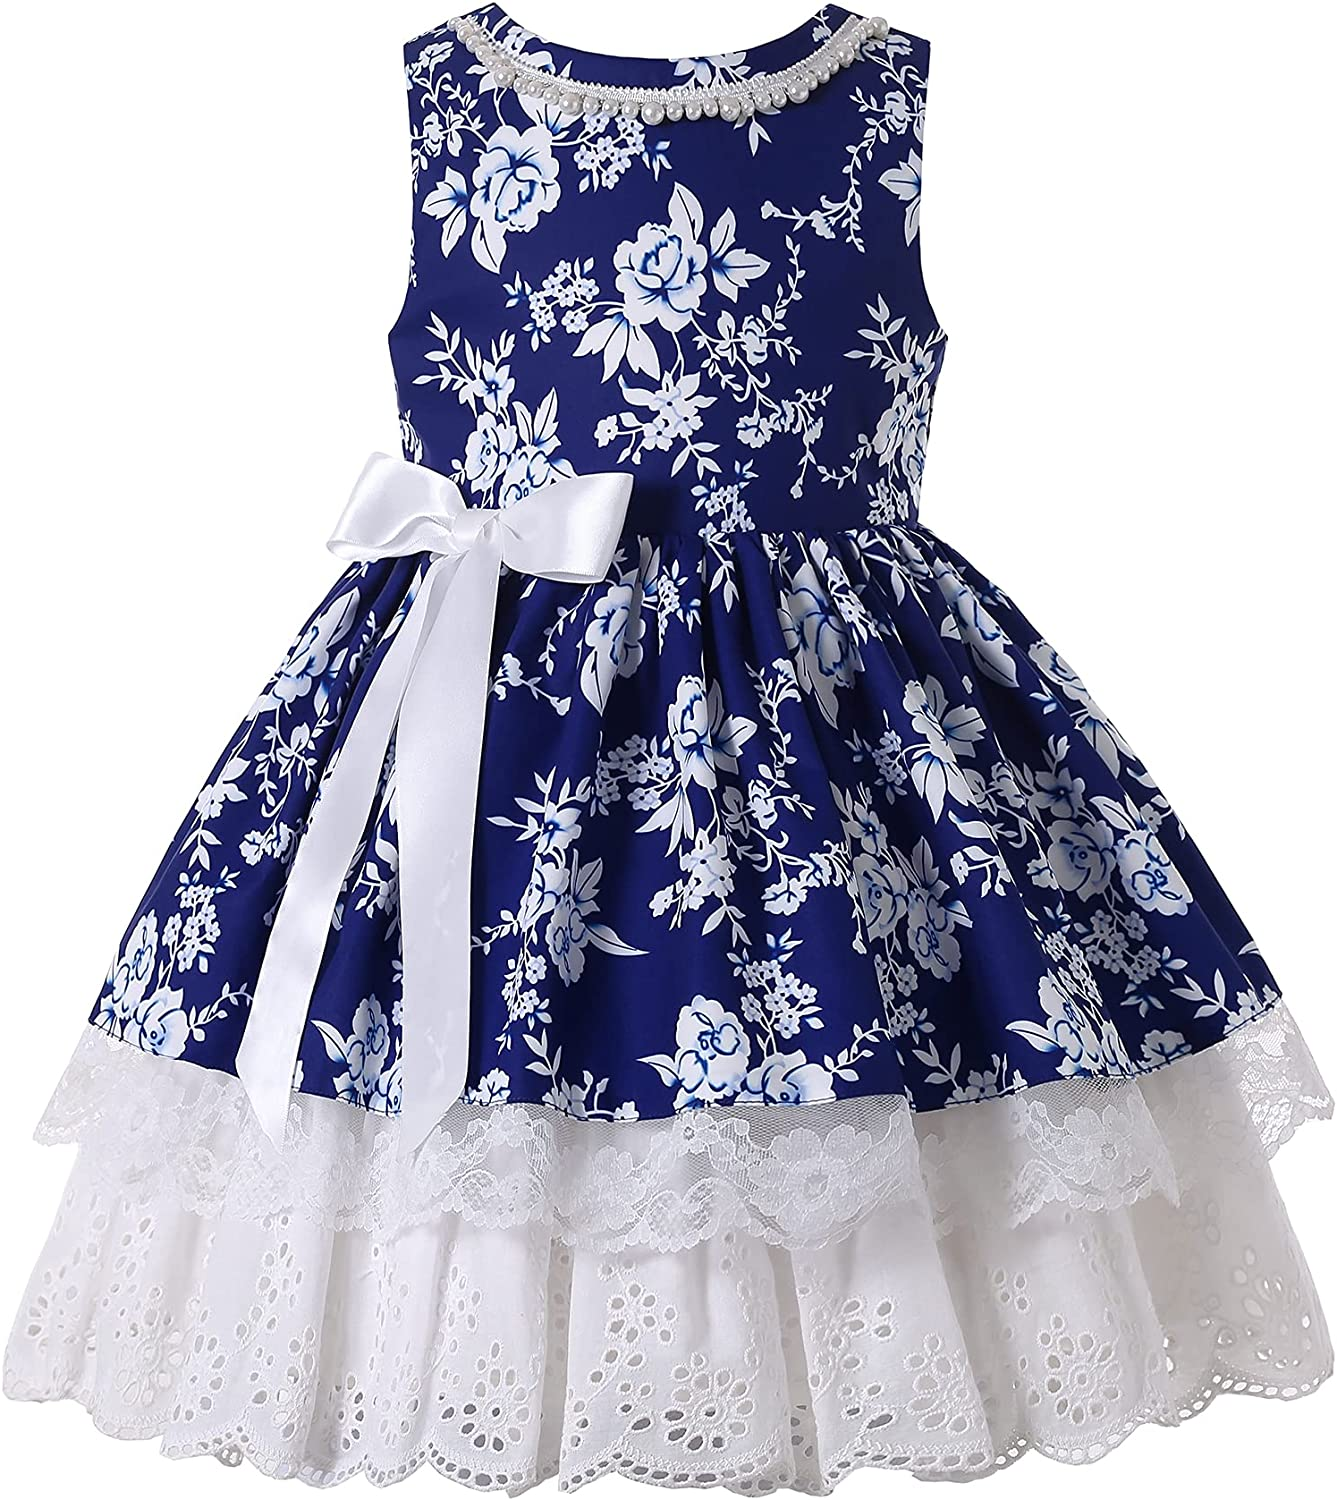 Pettgirl Kids Girls Elegant Navy Lace Ruffle Holiday Clothing Child Fashion Floral Fancy Pageant Boutique Dresses